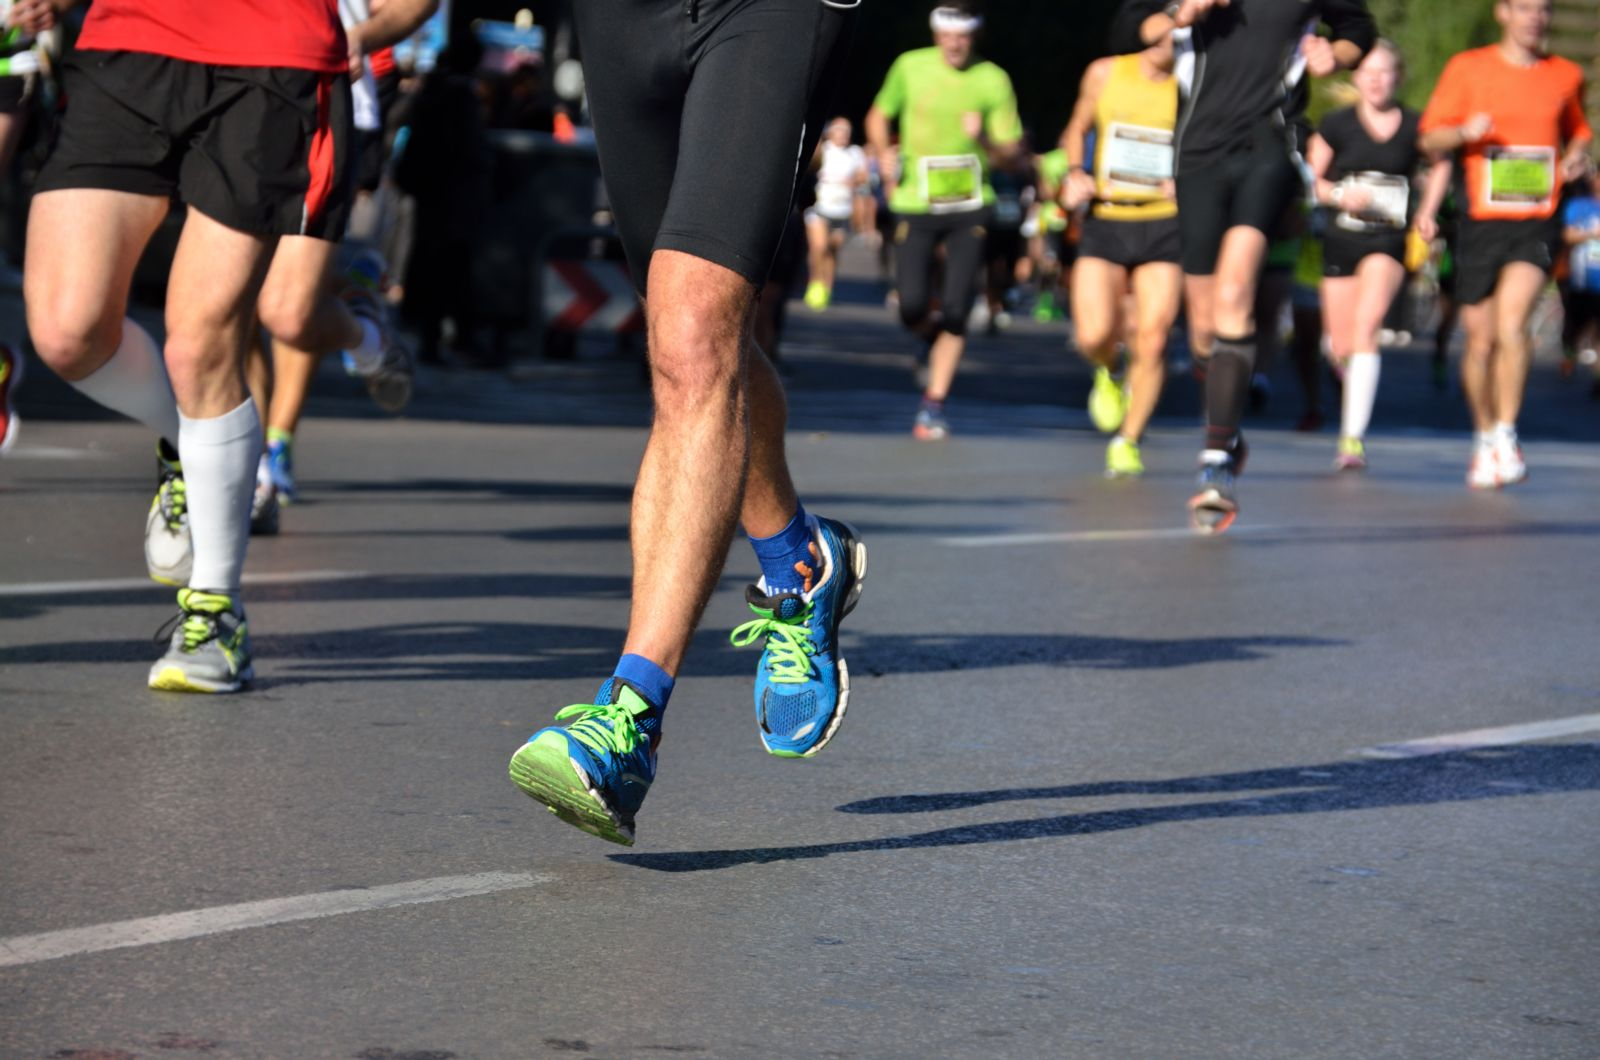 Runners are some of the most frequent plantar fasciitis patients that we see